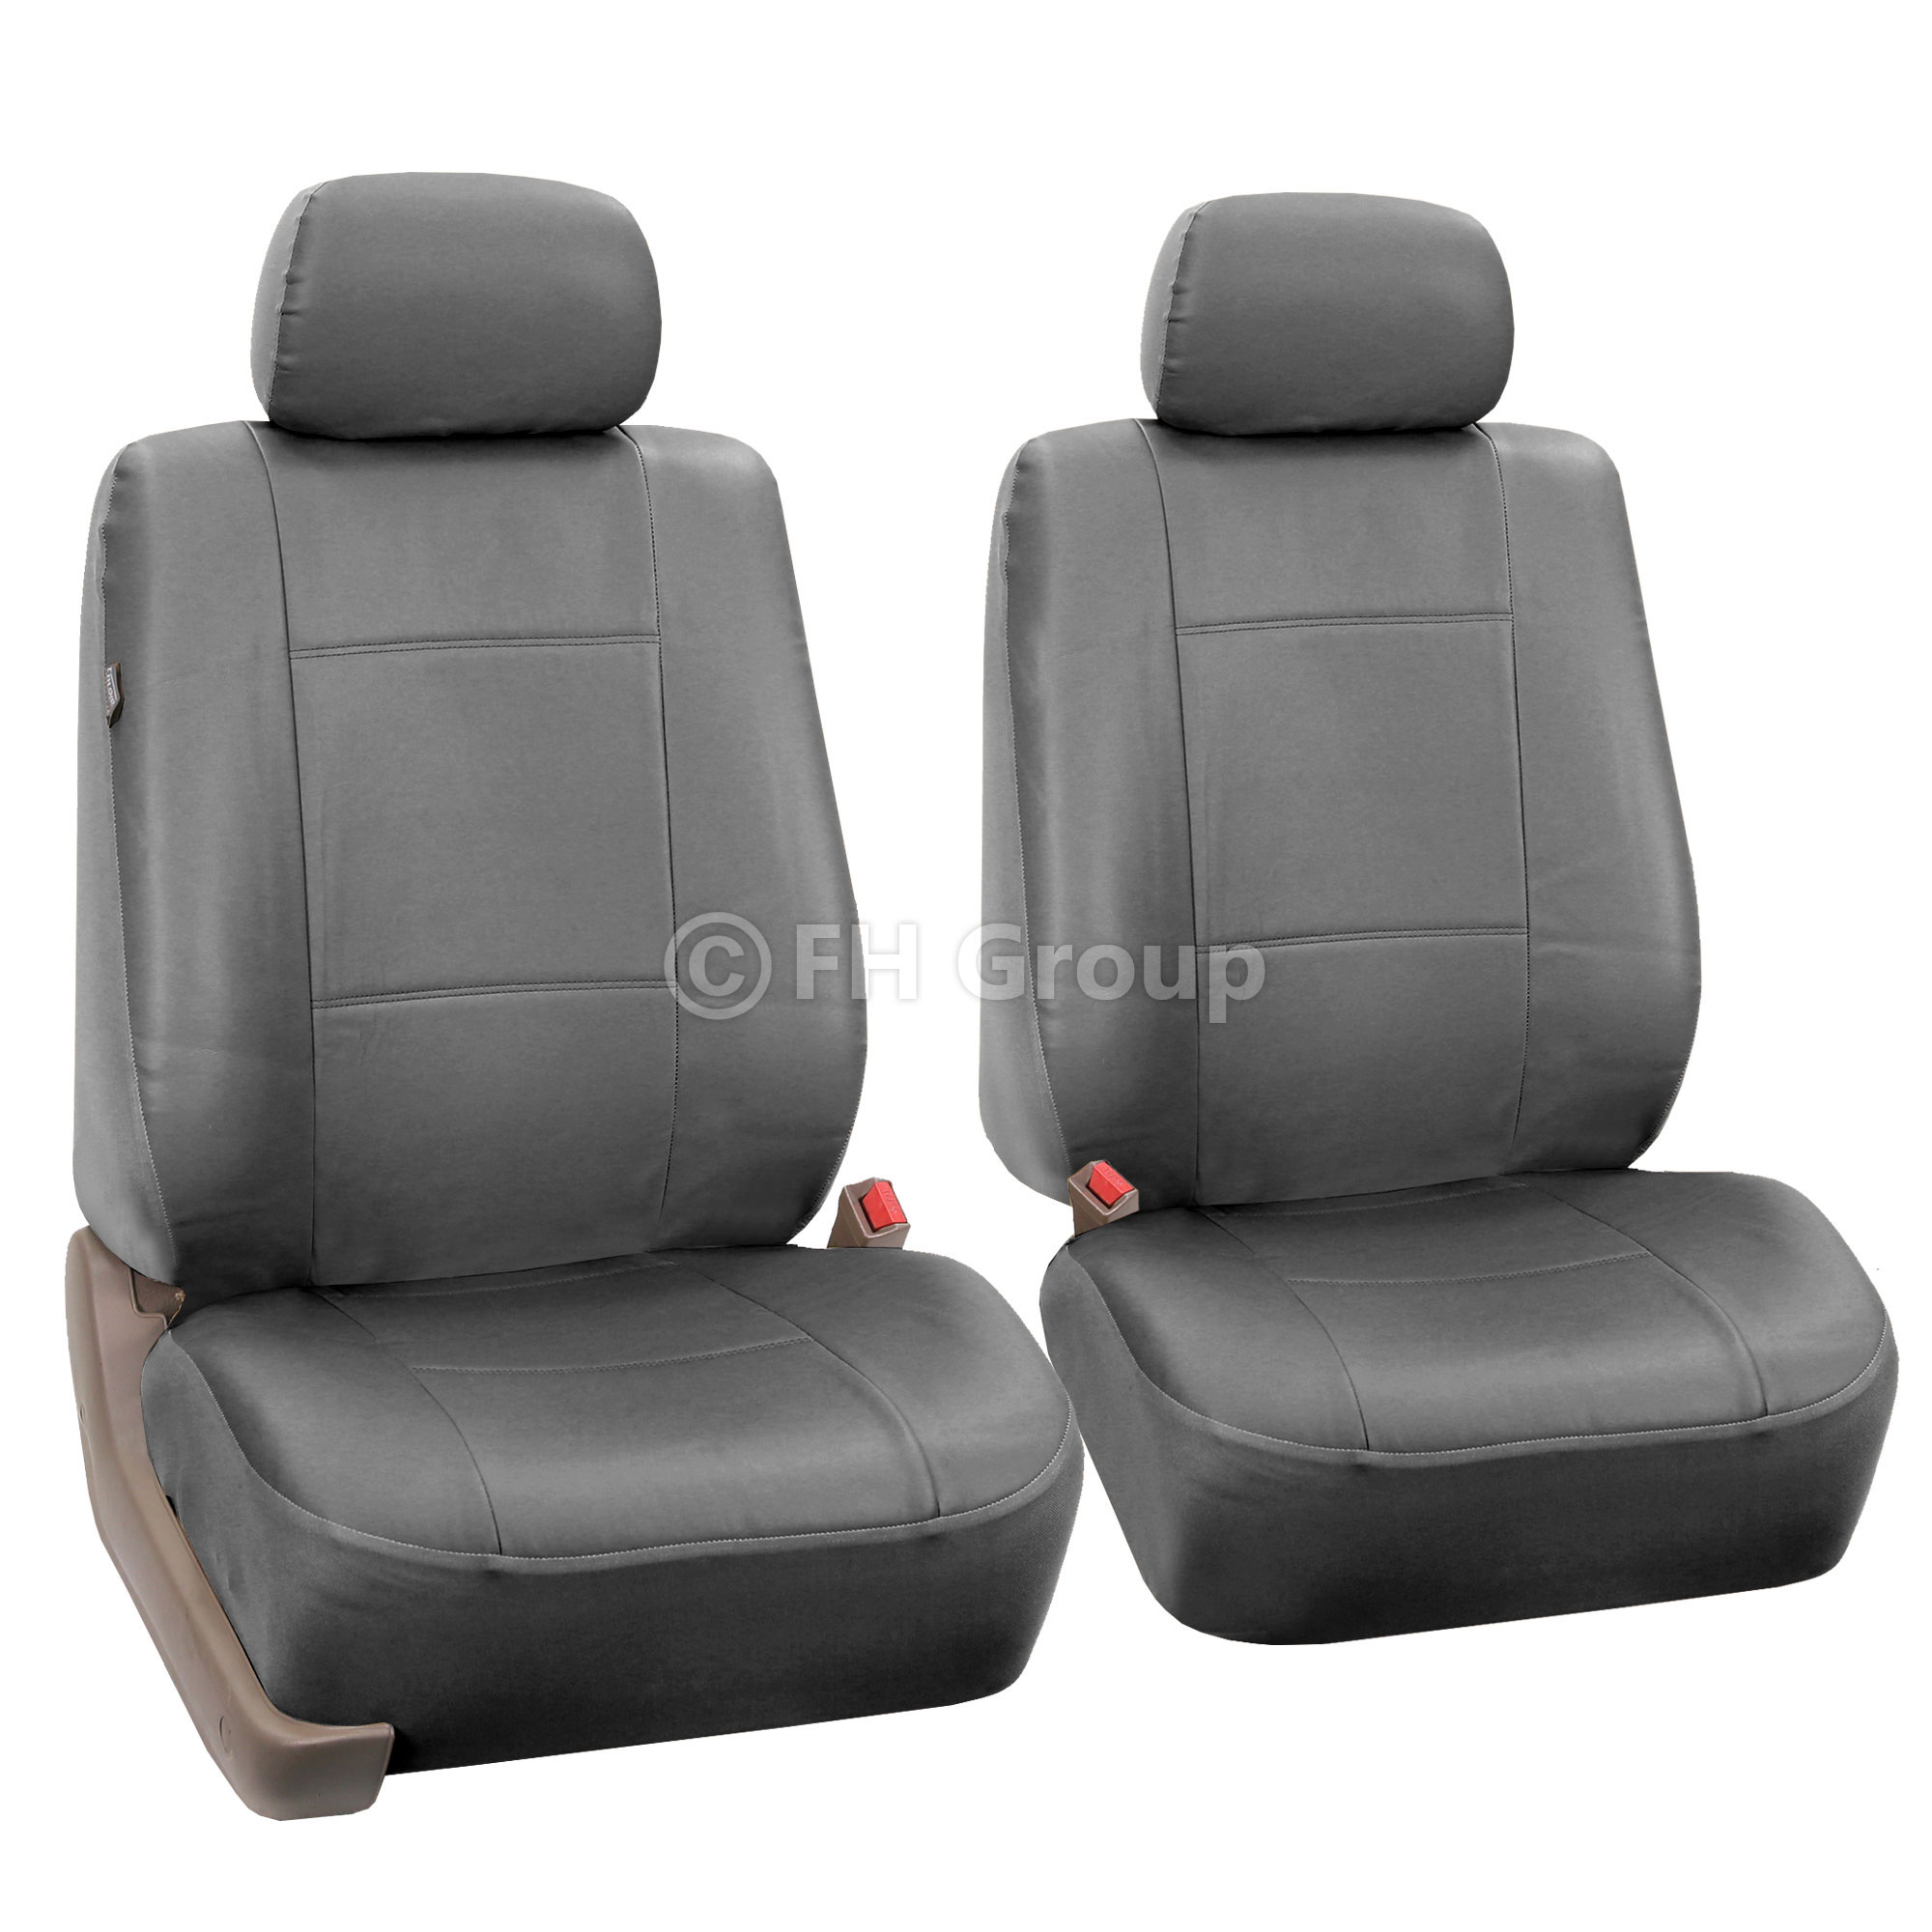 Gray Faux Leather Car Seat Cover Set Headrests